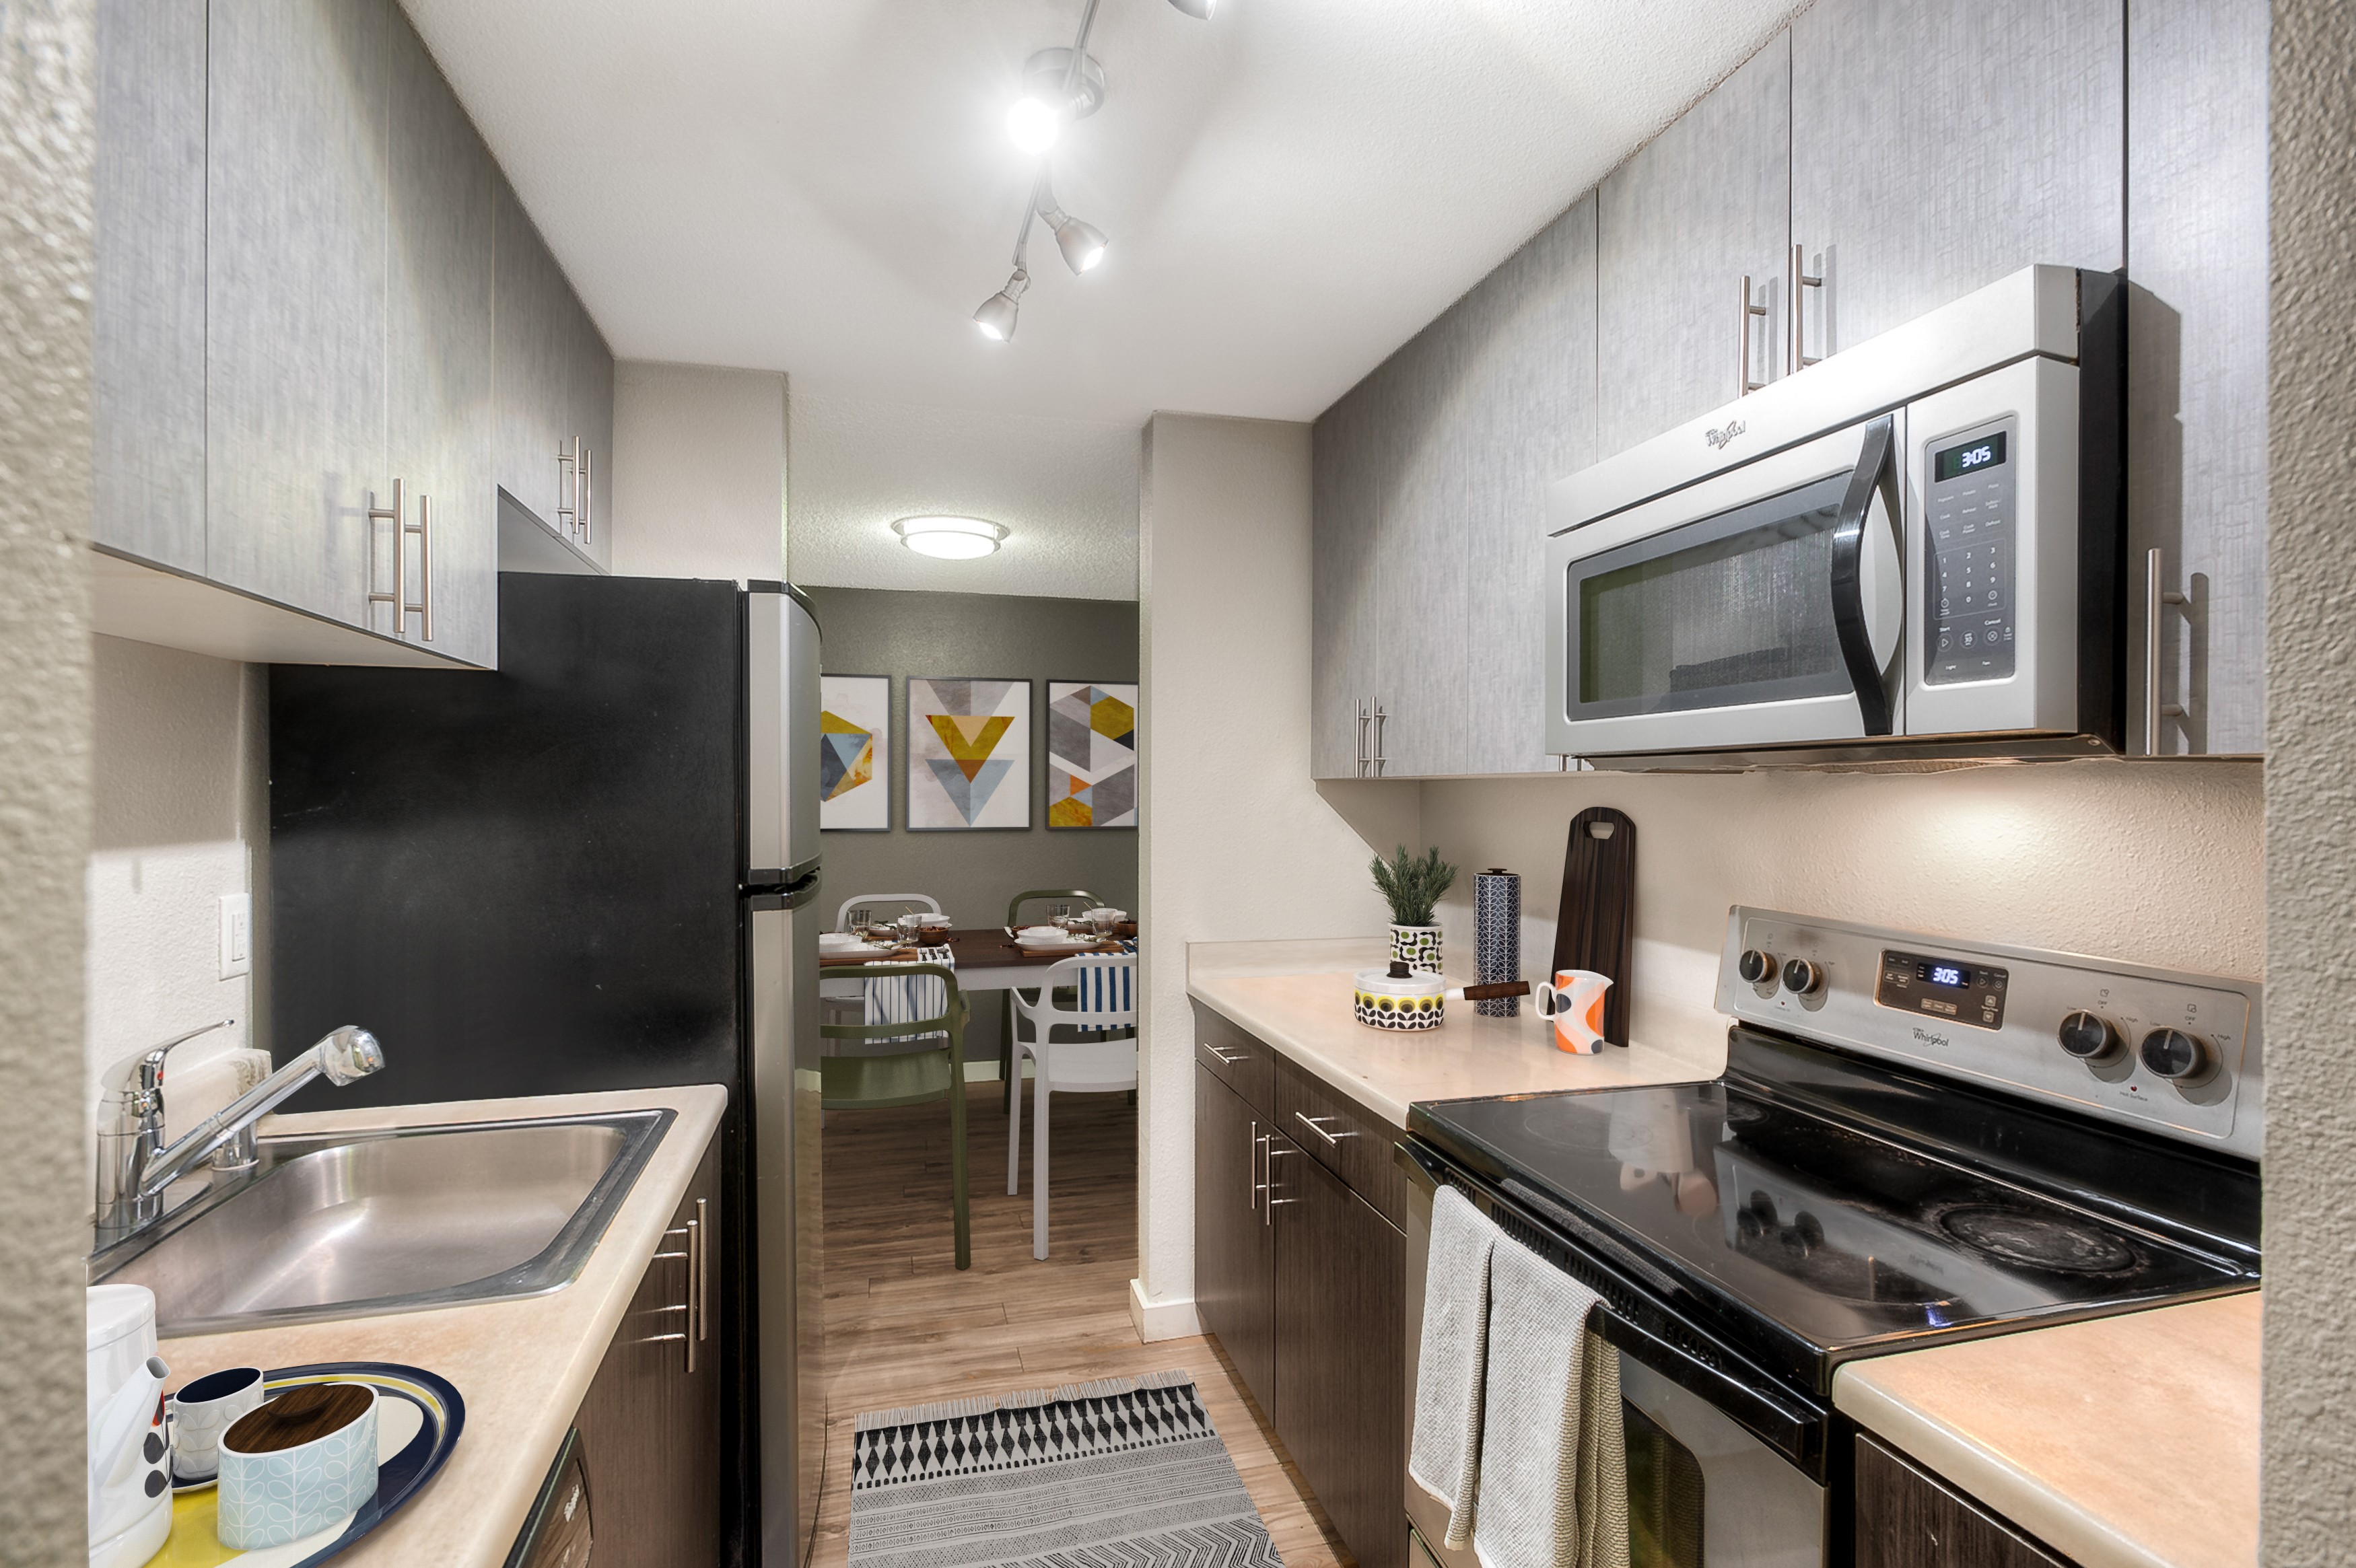 Apartments Near Green River Karbon for Green River Community College Students in Auburn, WA